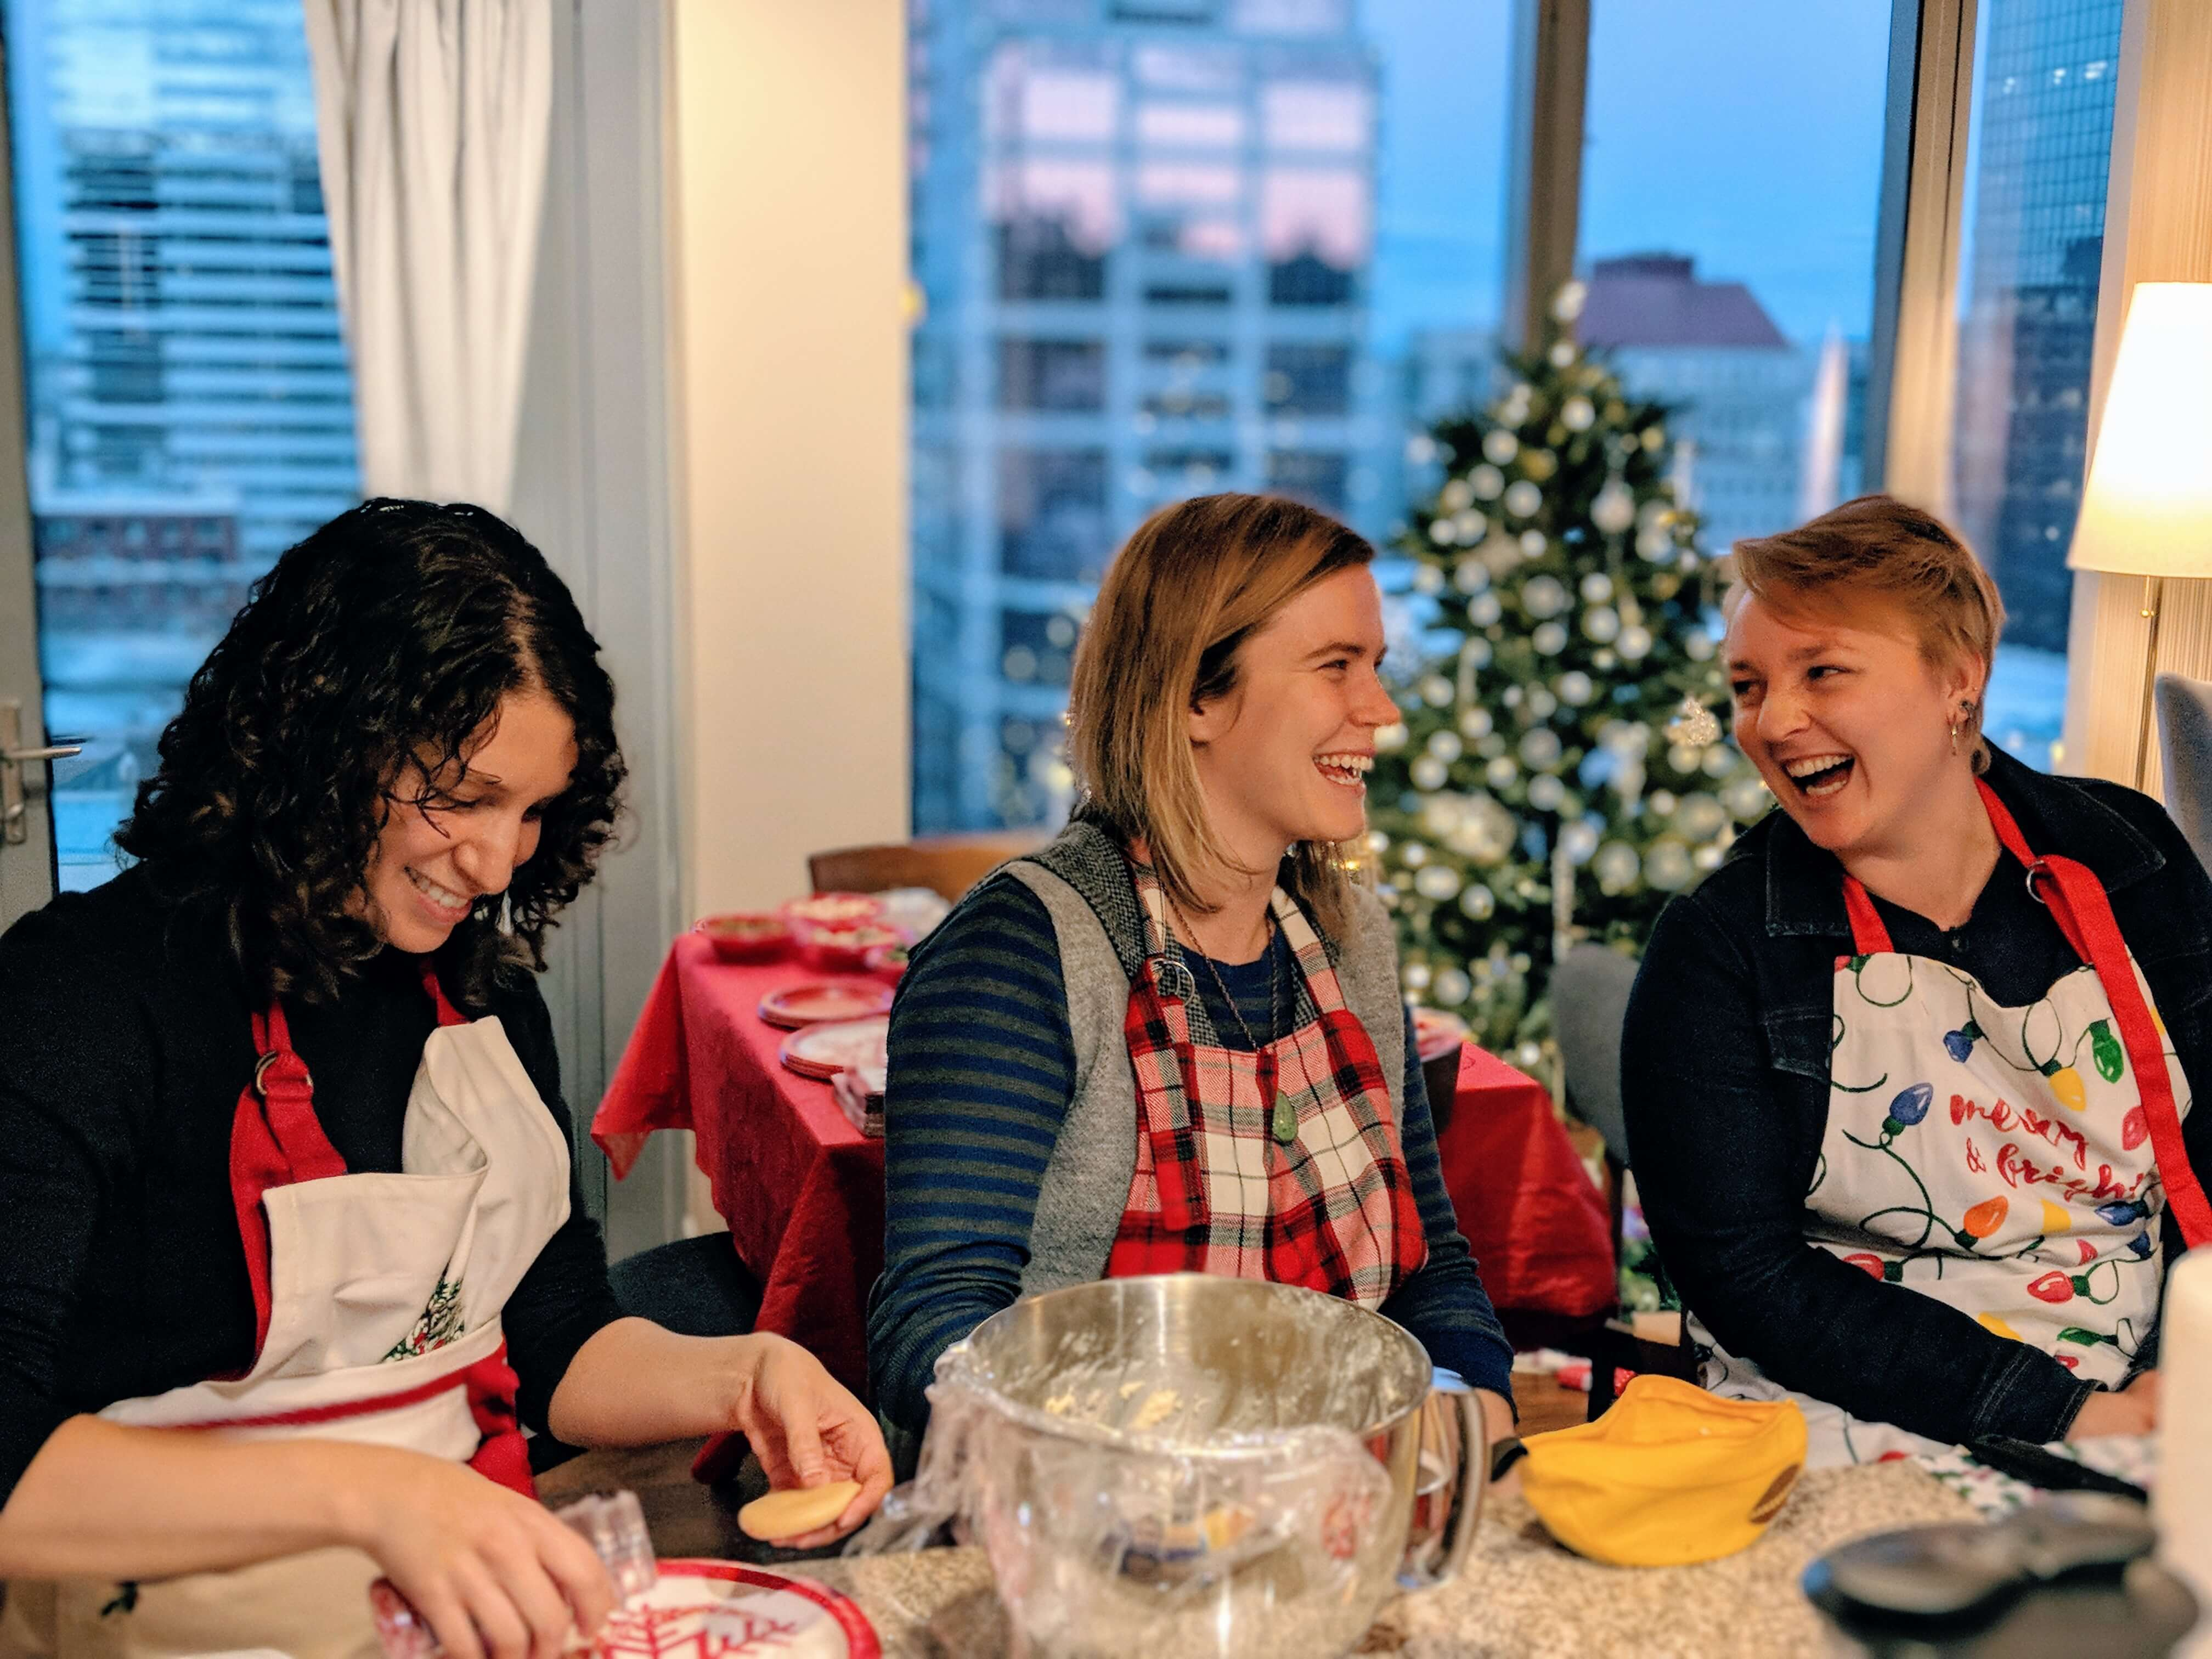 Marisa, Alli, and Aesch at a family baking day.